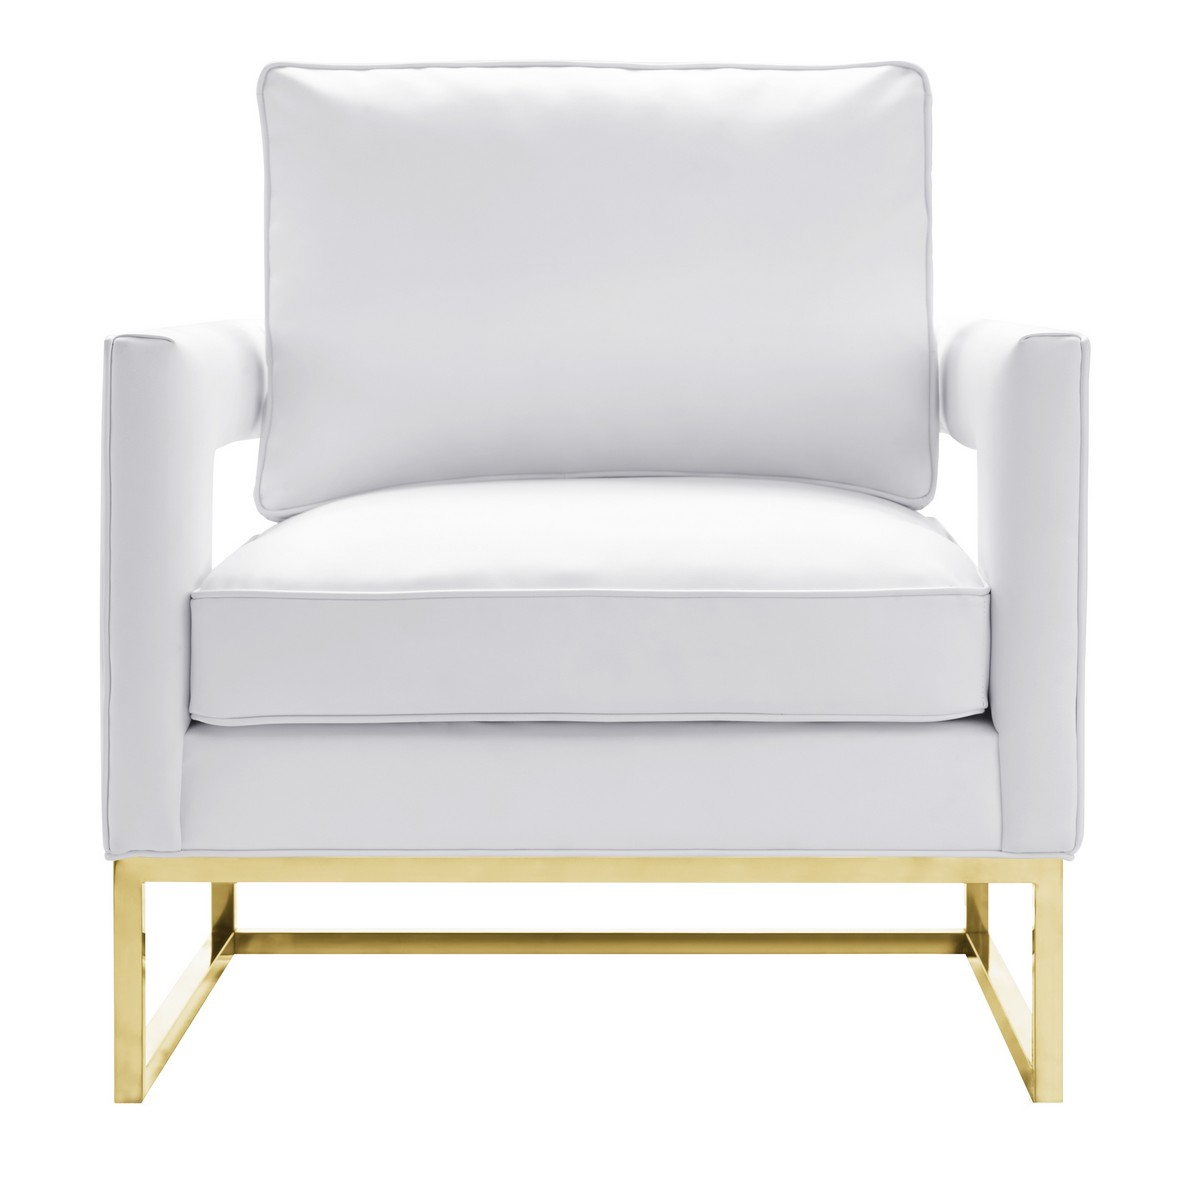 TOV Furniture Avery White Leather Chair